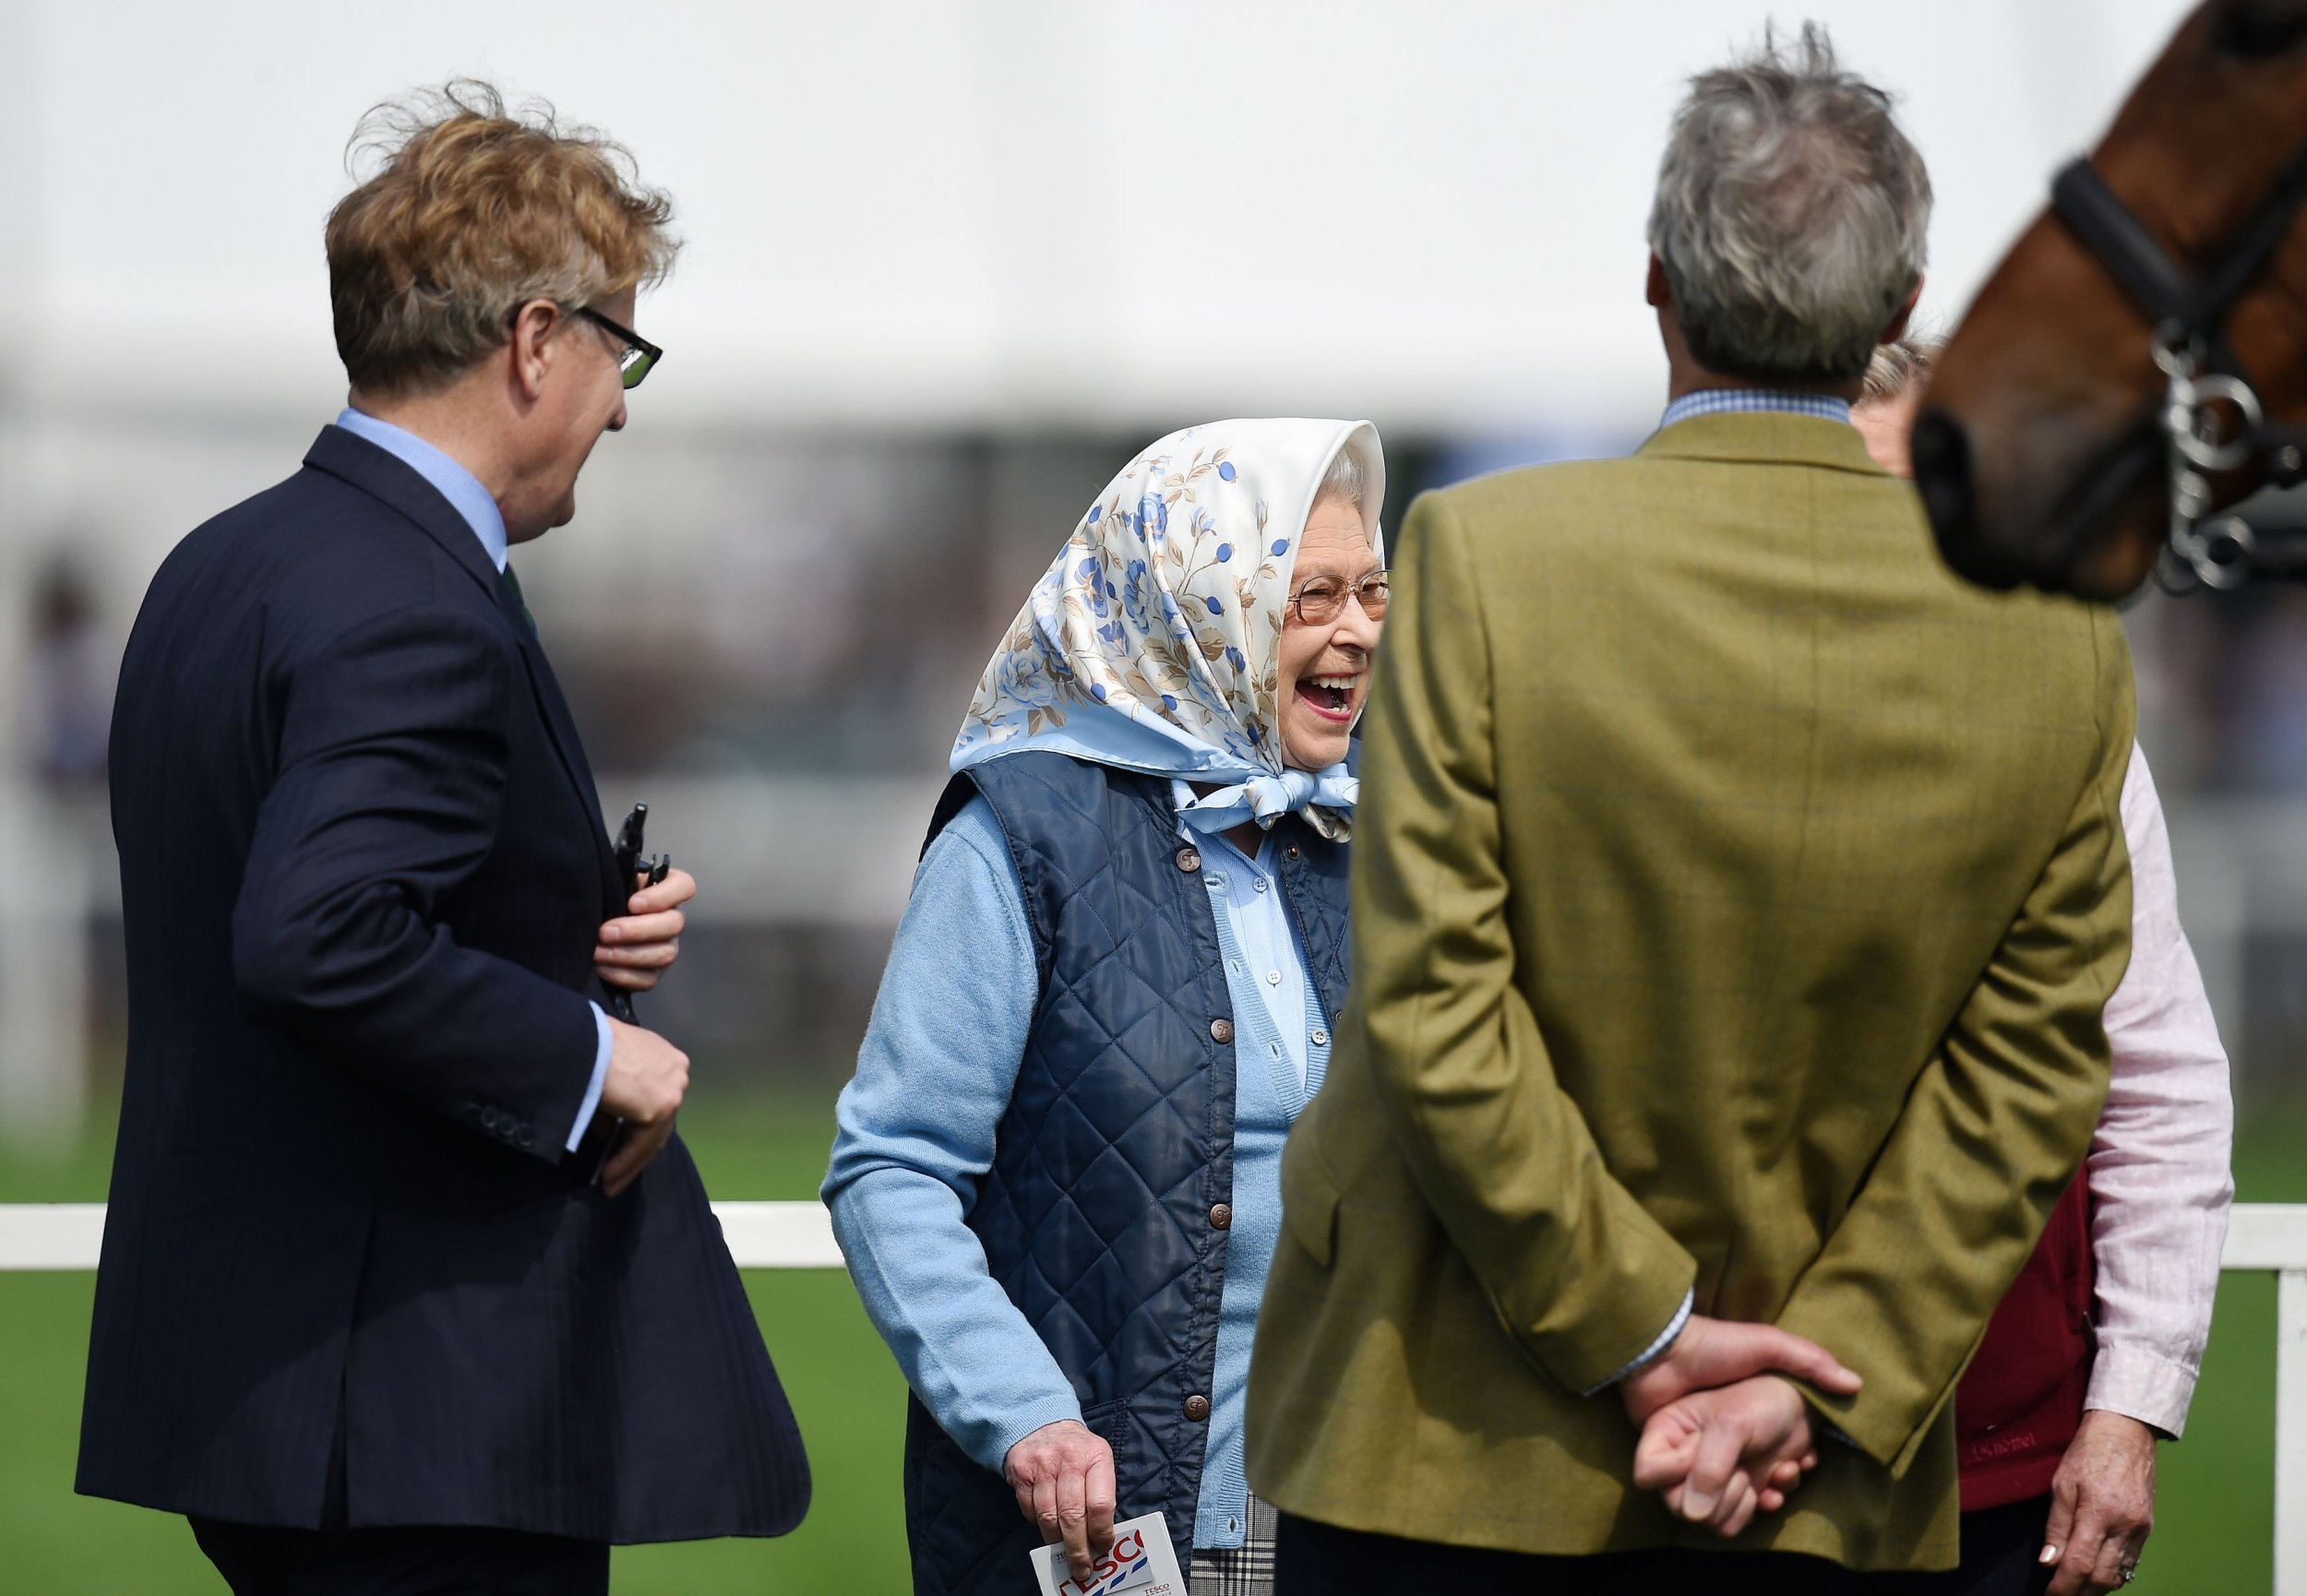 Queen Elizabeth II reacts after receiving Tesco vouchers after her horse Barber's Shop won the Tattersalls & RoR Thoroughbred Ridden Show during the Royal Windsor Horse Show, which is held in the grounds of Windsor Castle in Berkshire. PRESS ASSOCIATION Photo. Picture date: Thursday May 12, 2016. Photo credit should read: Andrew Matthews/PA Wire